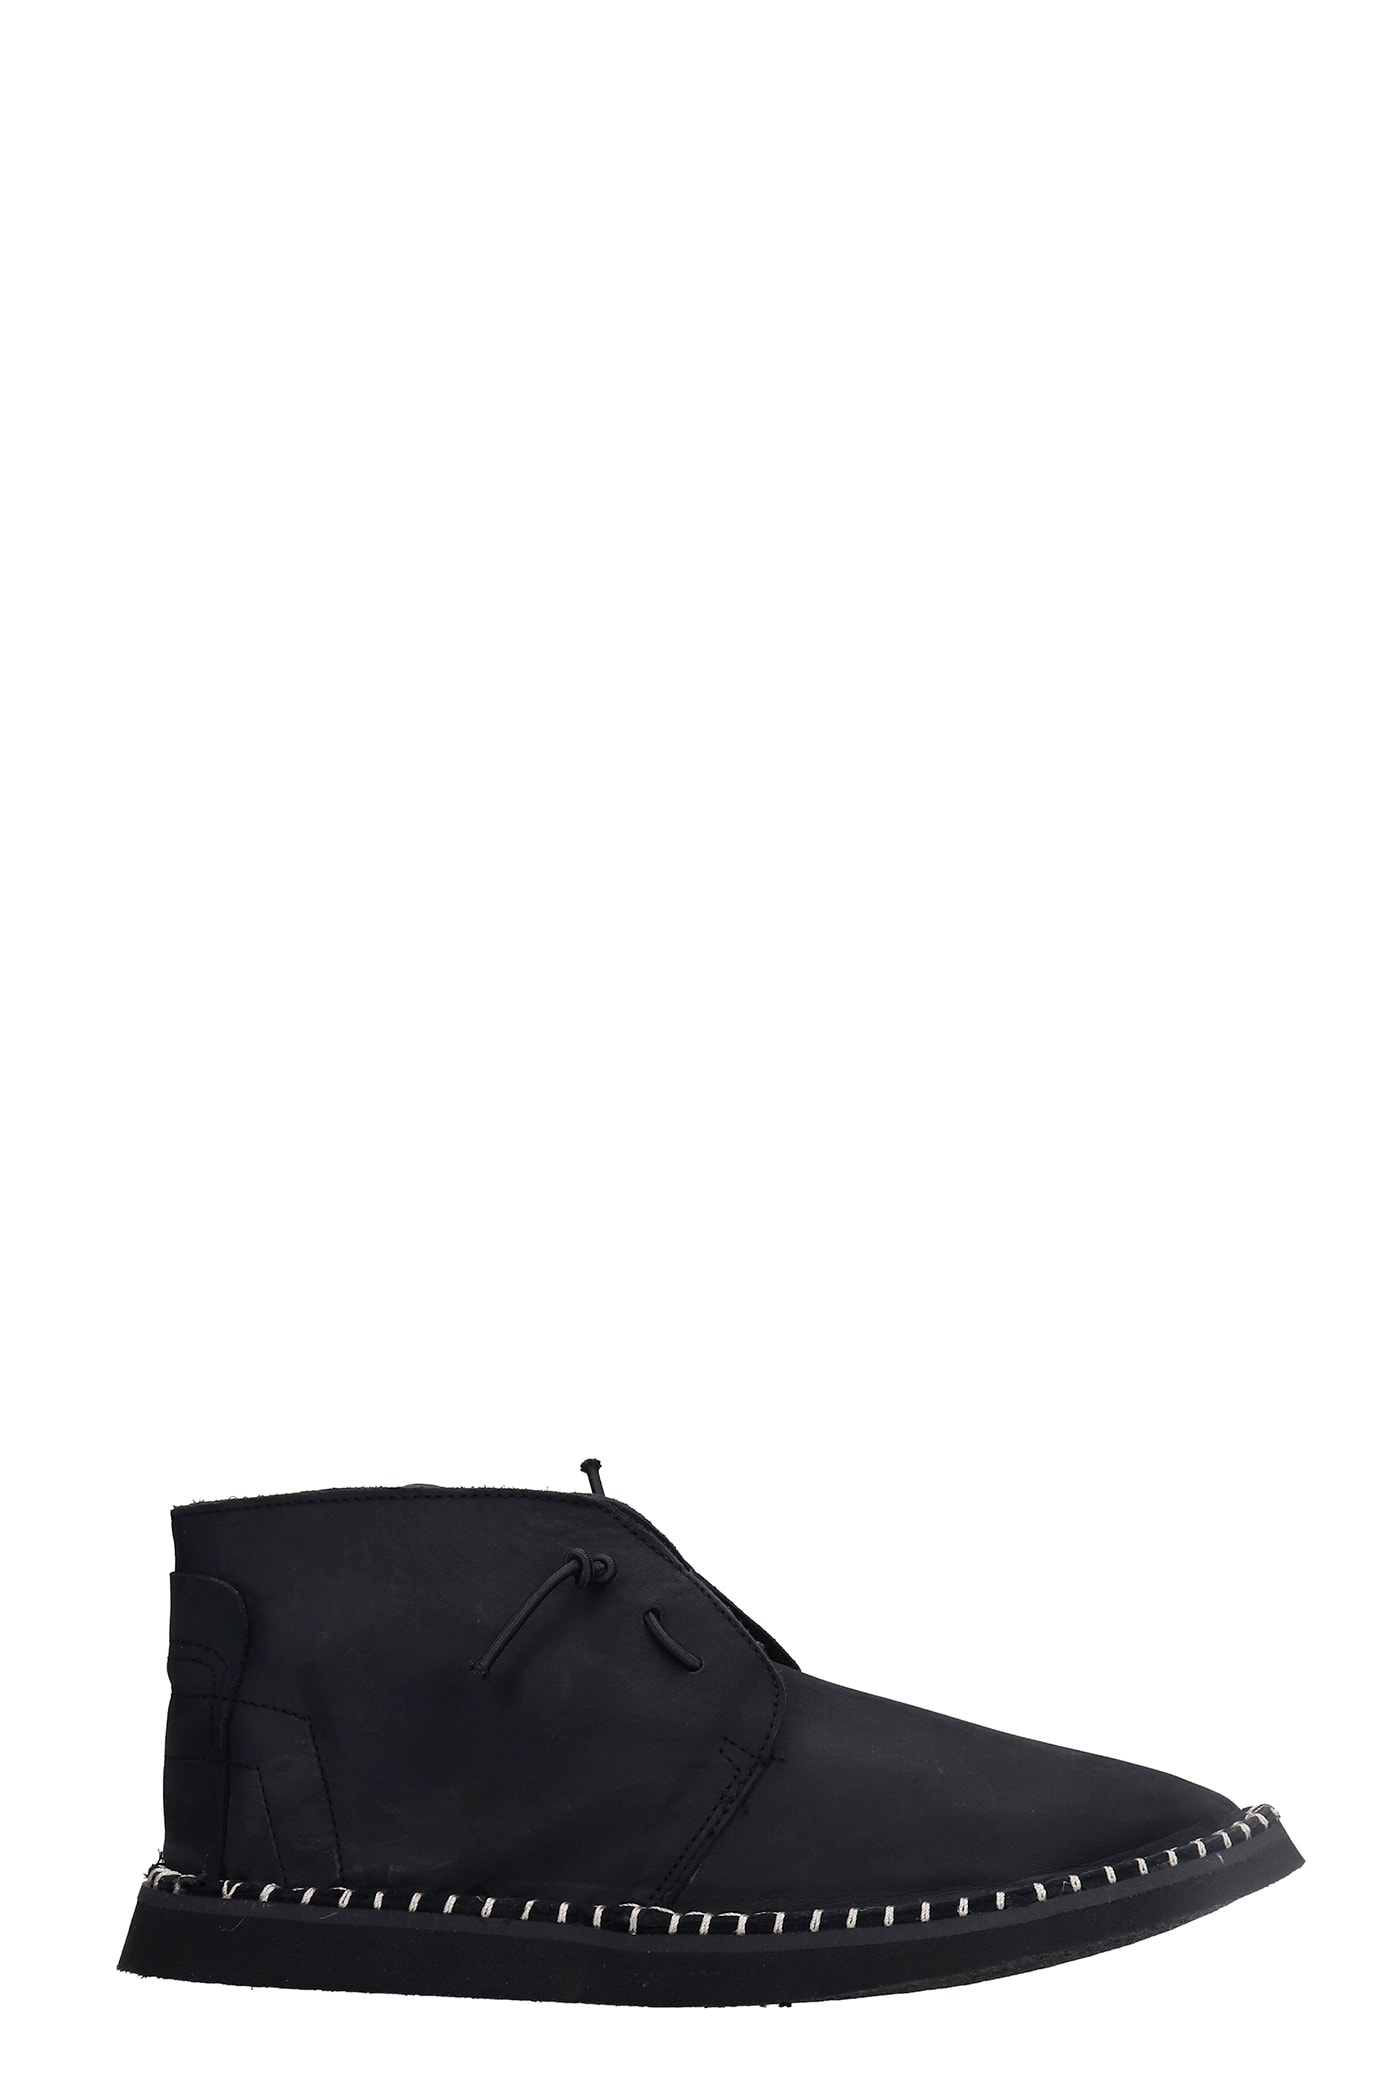 Flavor Lace Up Shoes In Black Nubuck